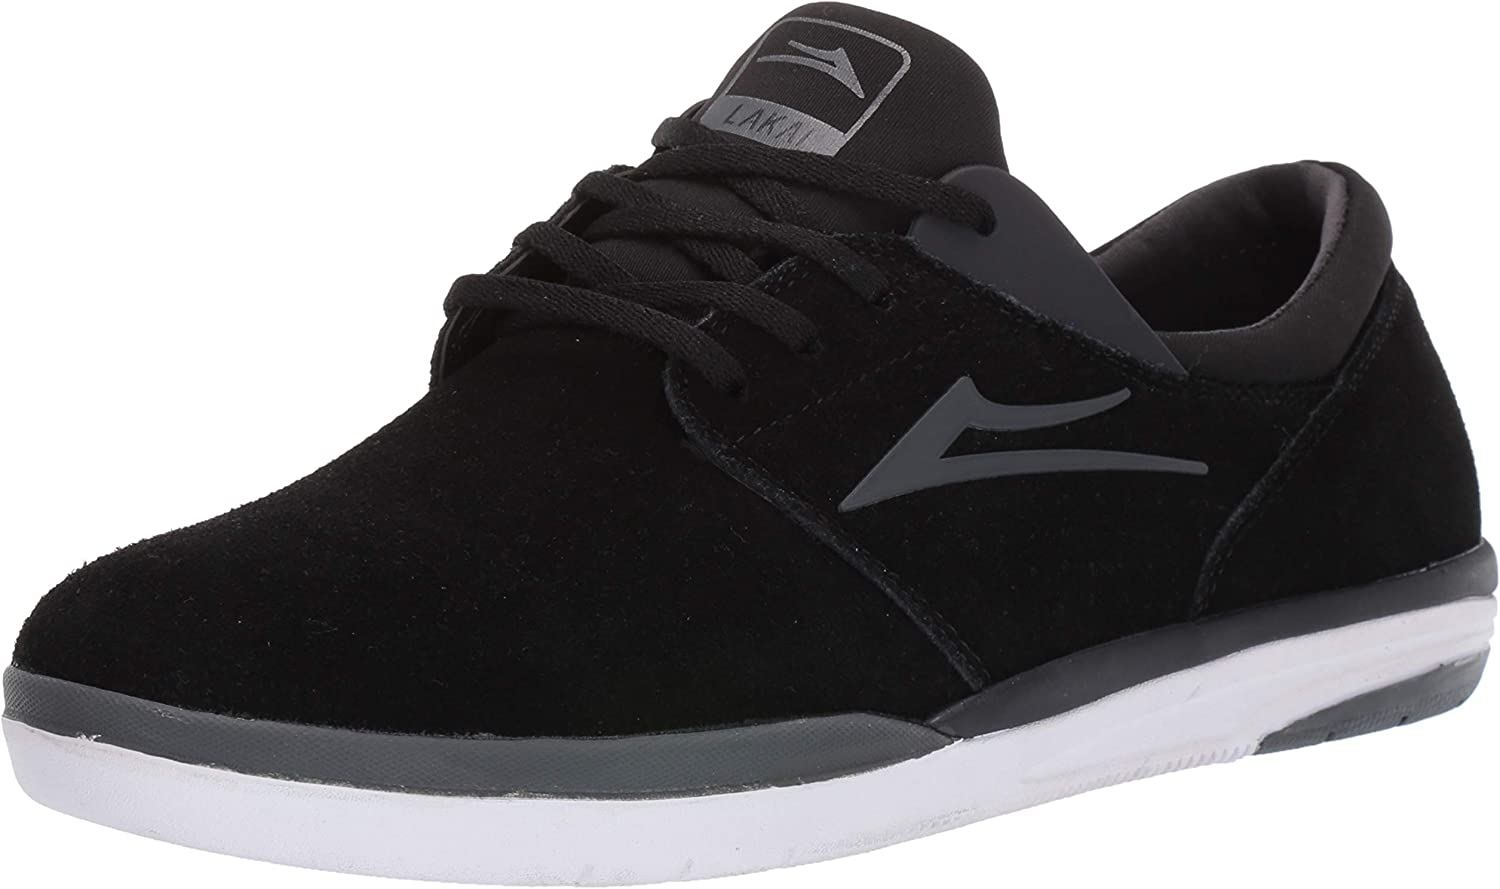 Lakai Footwear Fremont Black Charcoal Suedesize Tennis shoes, Black Charcoal Suede